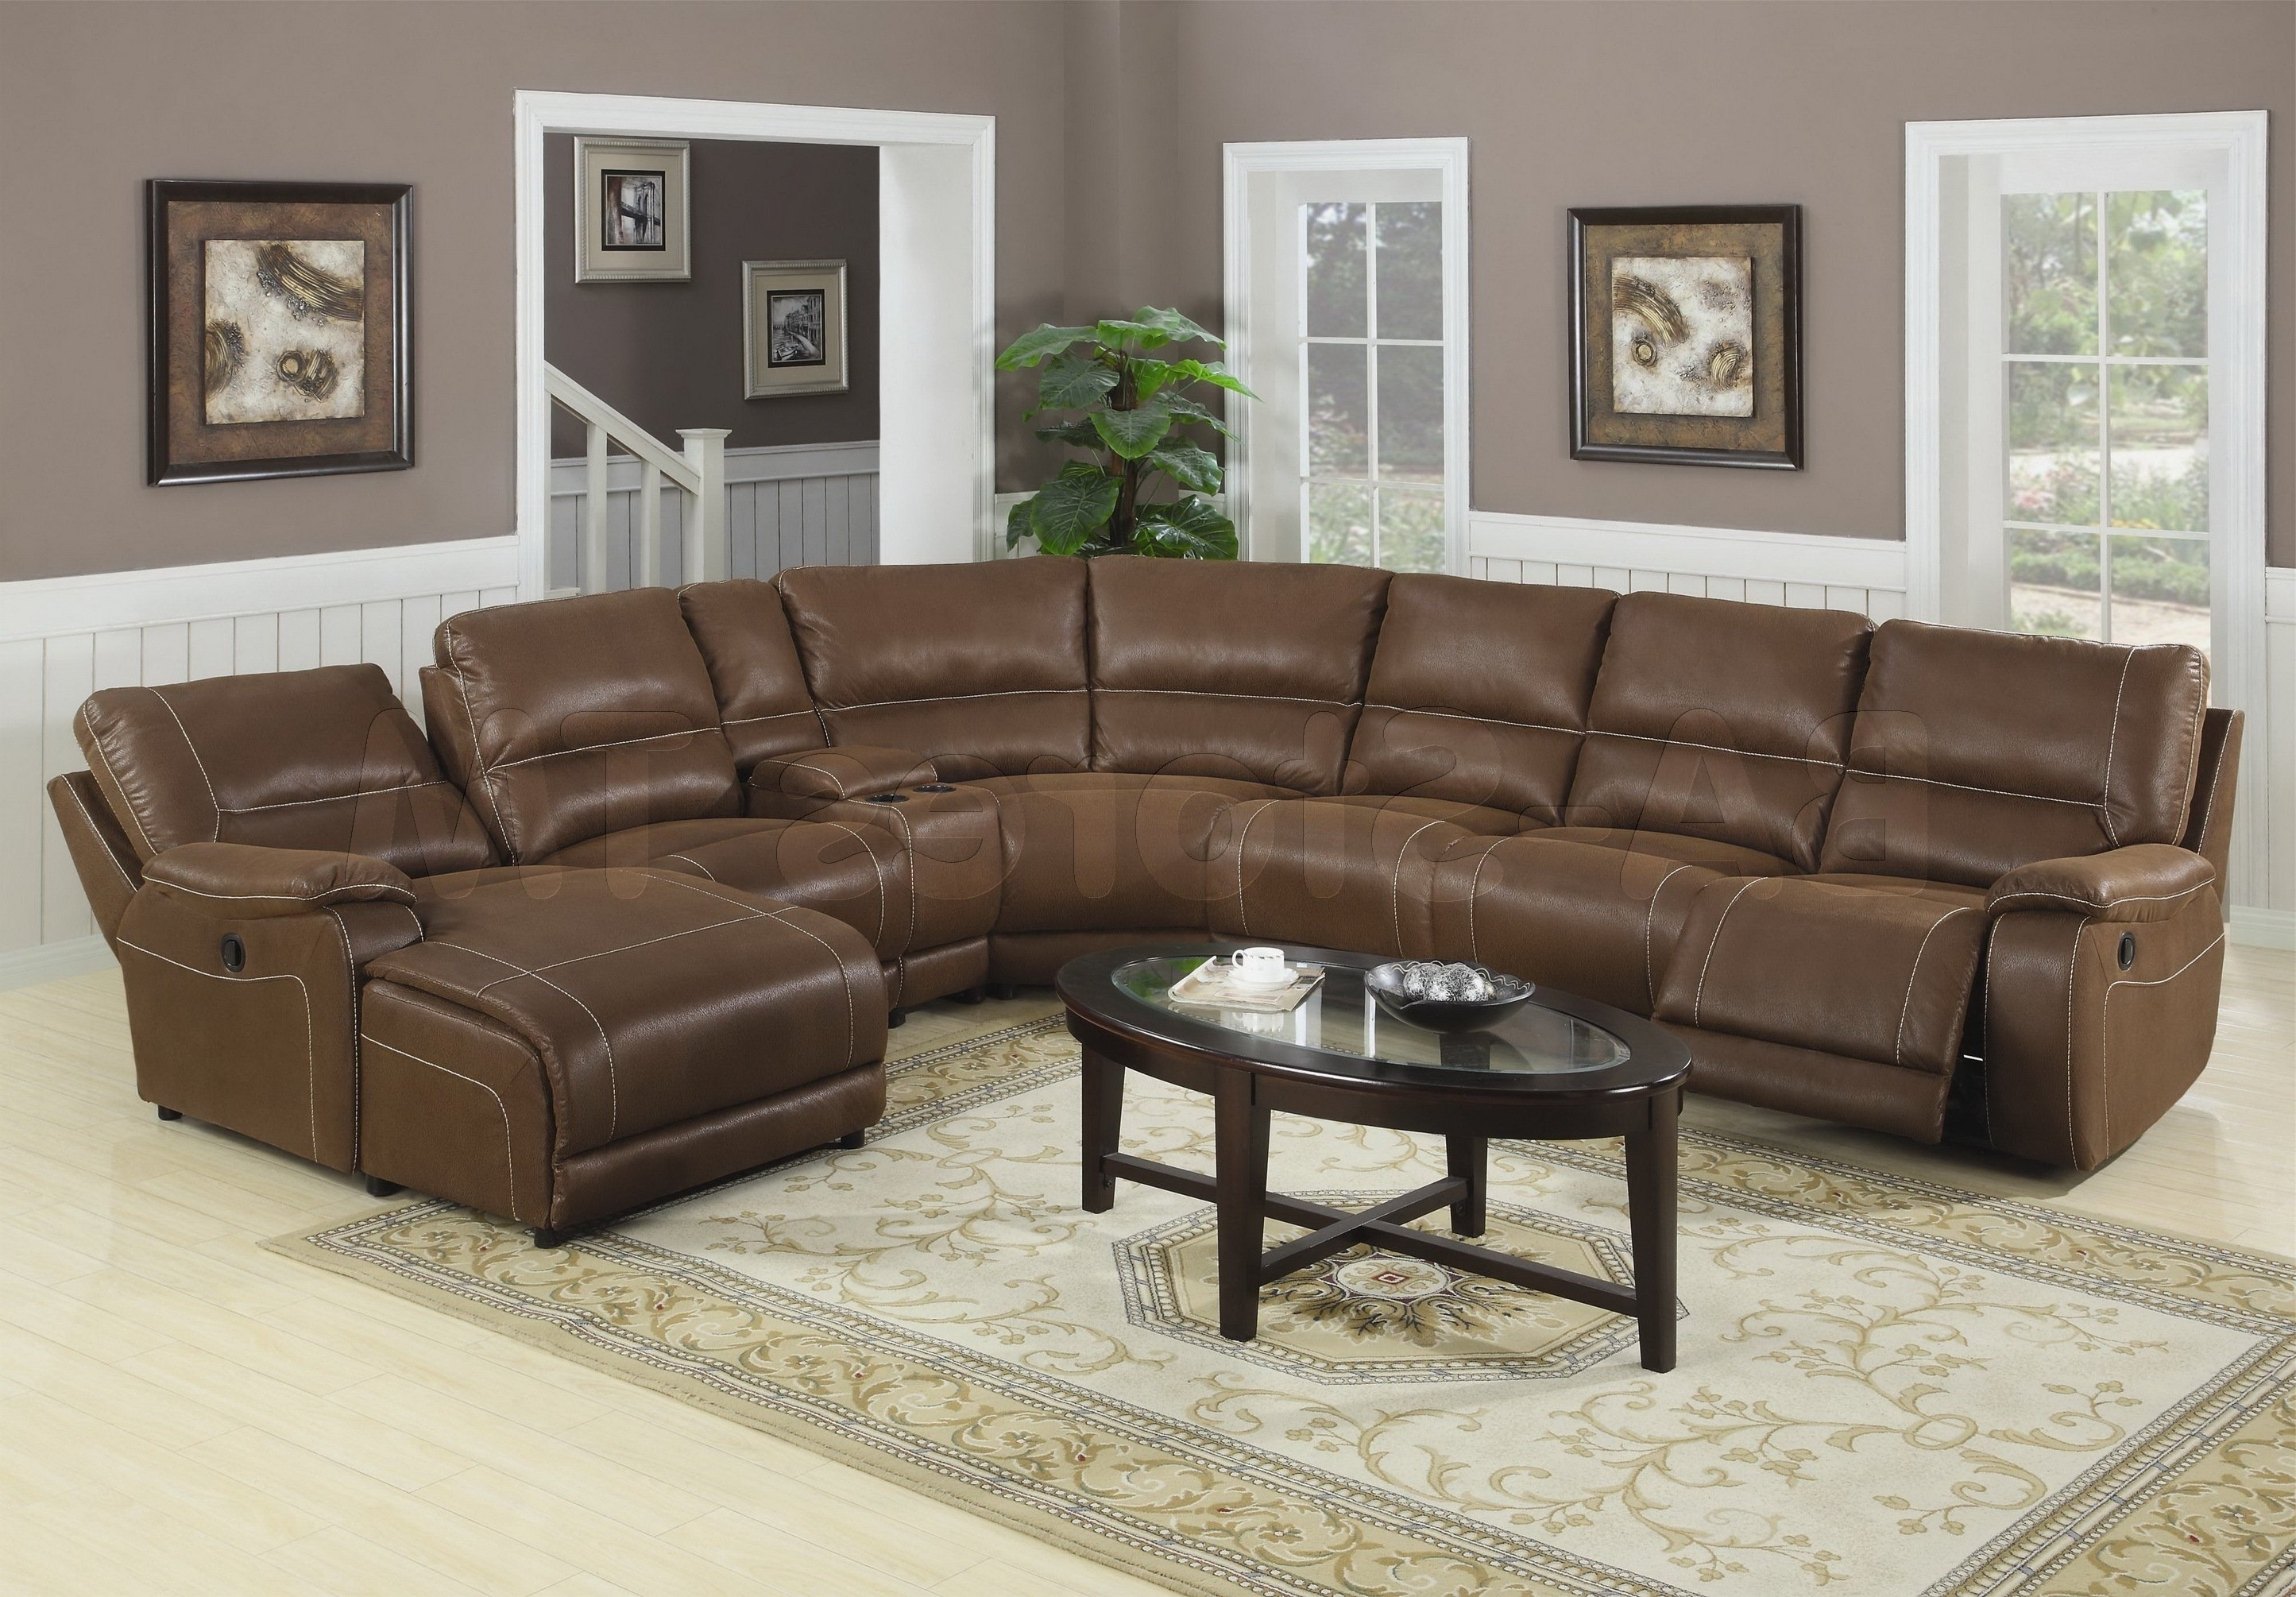 Interior Luxury Oversized Sectional Sofa For Awesome Living Room Within Well Known Large Sectionals With Chaise (View 4 of 15)